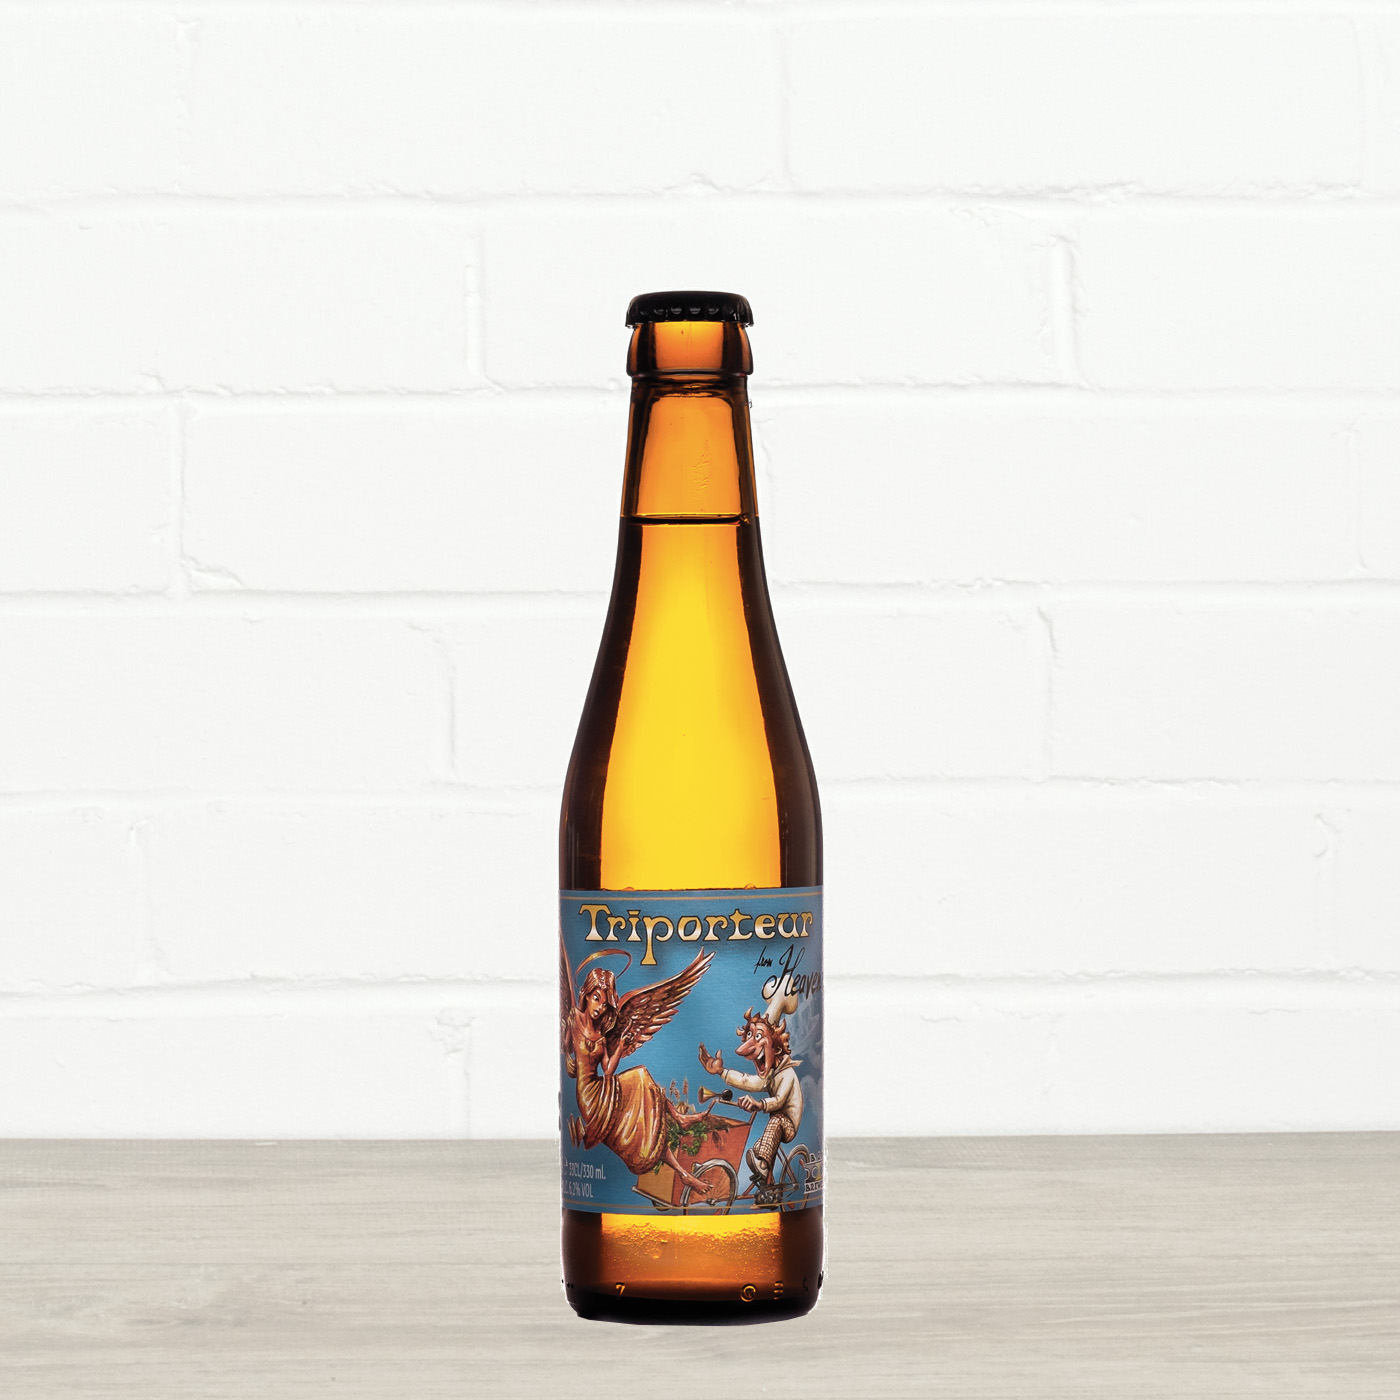 Triporteur from Heaven by BOM Brewery